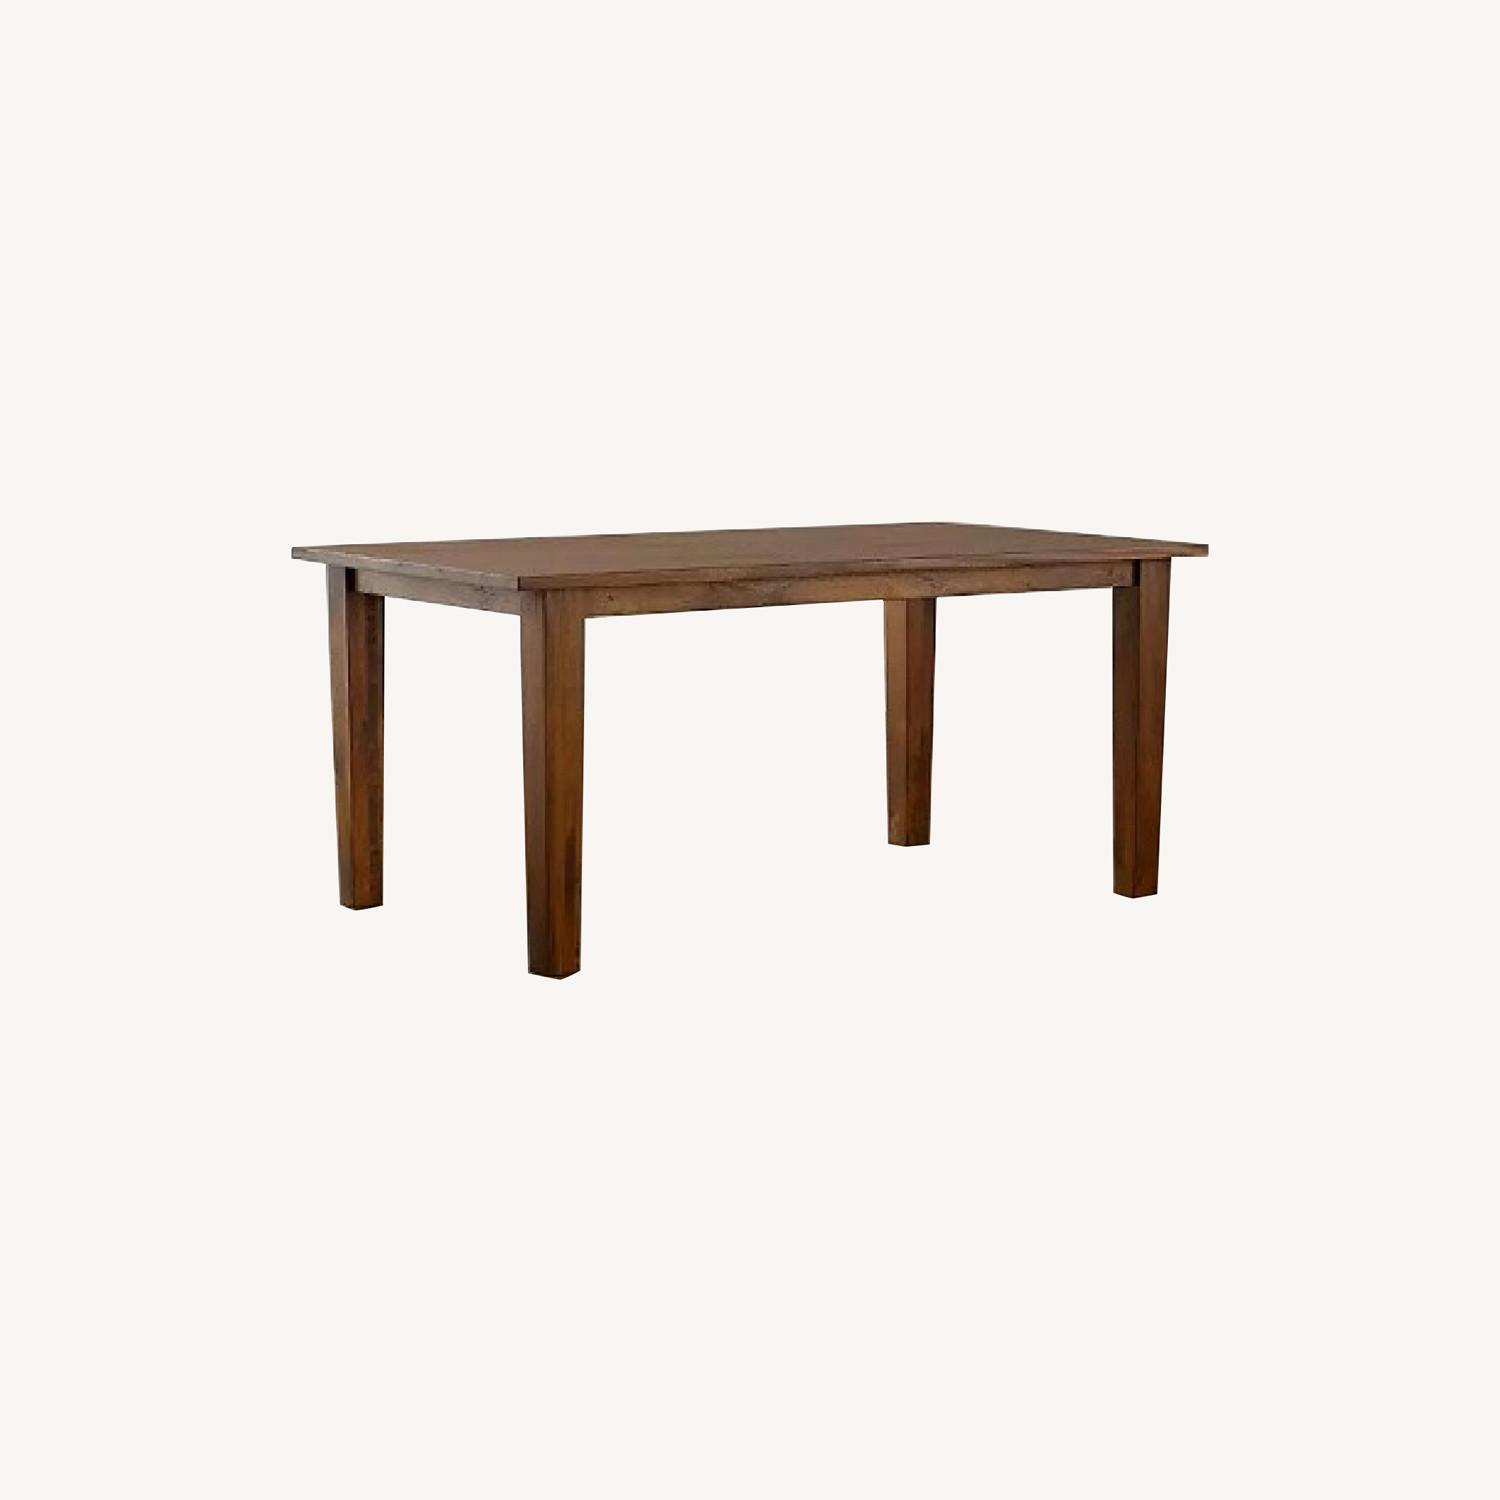 Crate and Barrel Basque Dining Table and 8 Chairs - image-0